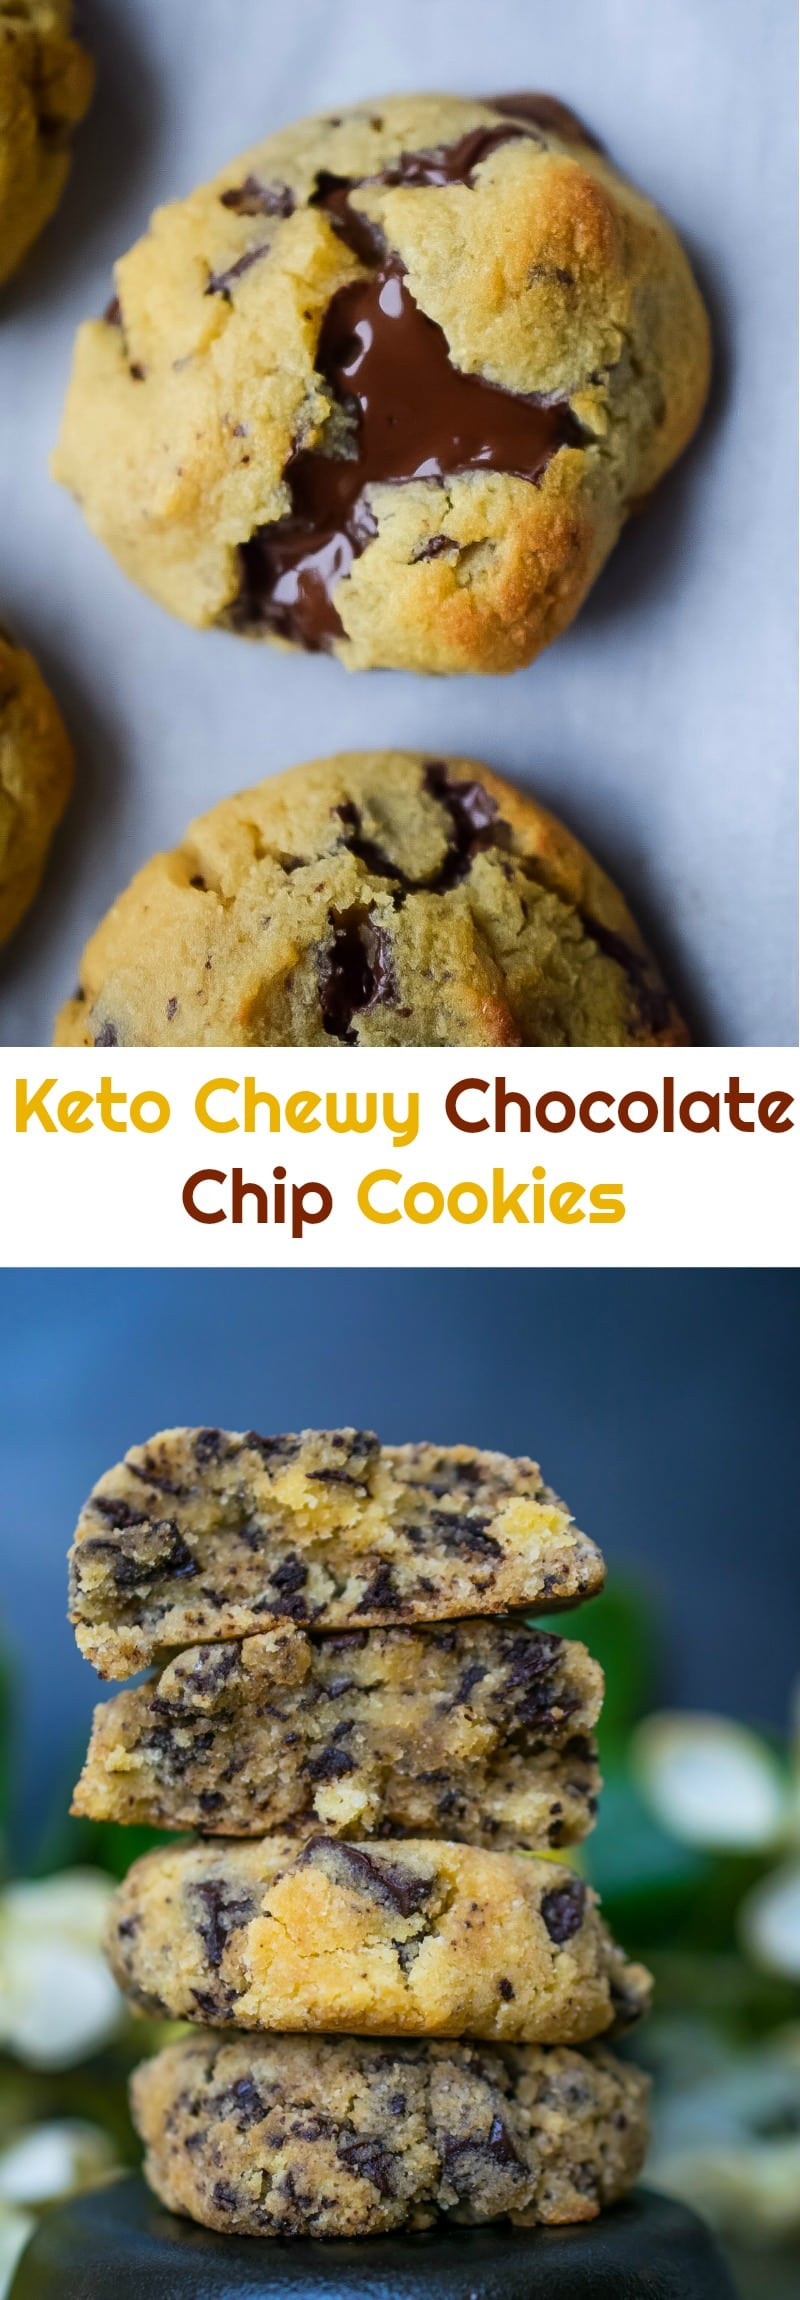 Chewy Keto Chocolate Chip Cookies  Keto Chewy Chocolate Chip Cookies